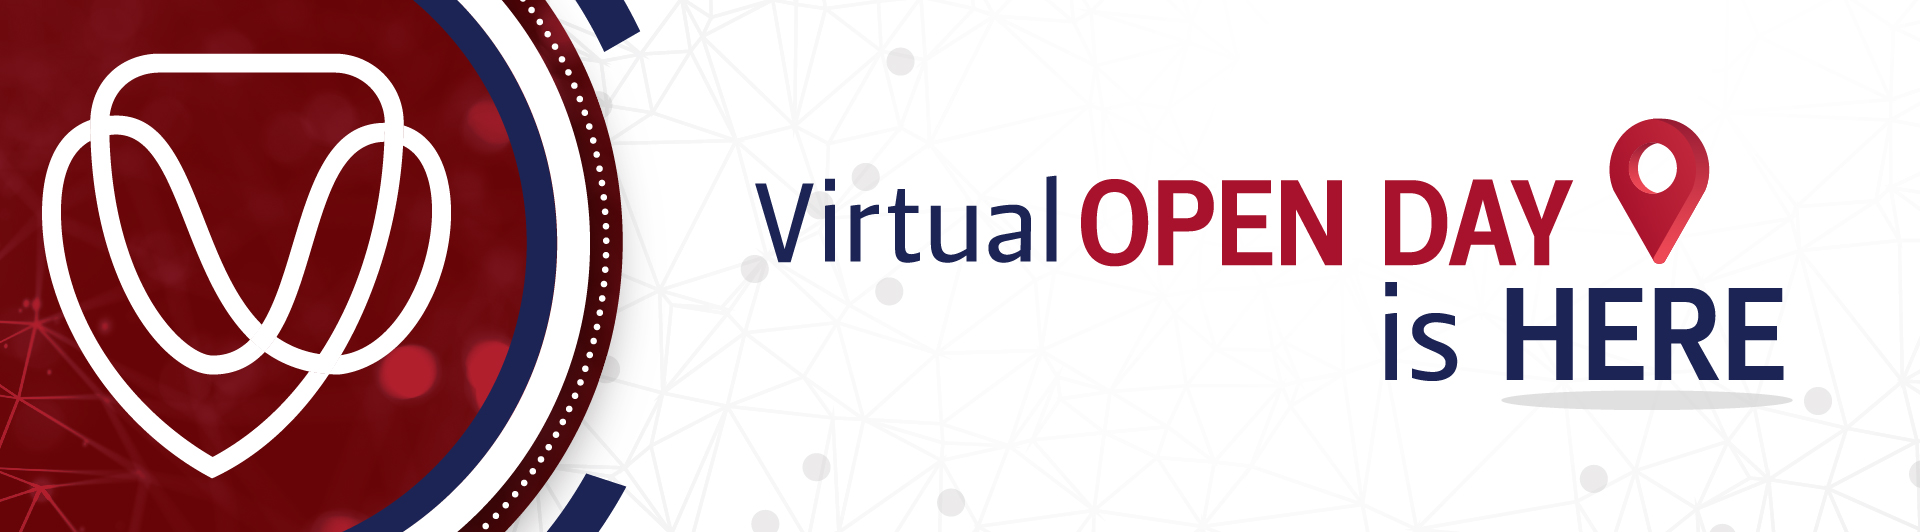 UFS Virtual Open Day is here